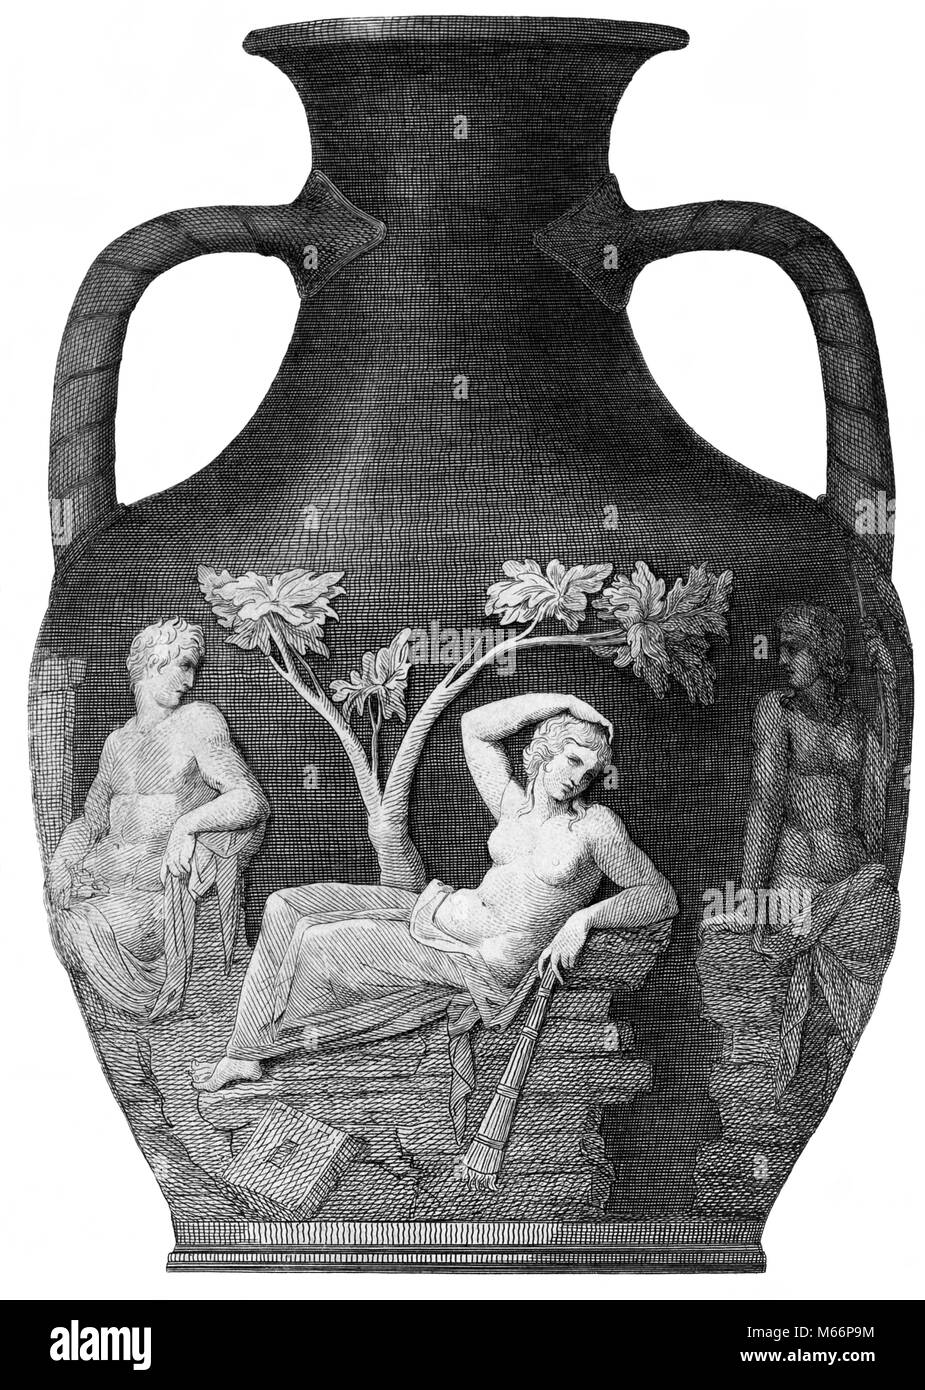 ENGRAVING OF PORTLAND VASE - FIRST CENTURY B.C. ROMAN CAMEO GLASS URN AMPHORA - q64018 CPC001 HARS ARTS B&W BLACK AND WHITE BRITISH MUSEUM FUNERARY FUNERARY URN OLD FASHIONED PERSONS PORTLAND VASE ROMAN CAMEO GLASS URN Stock Photo